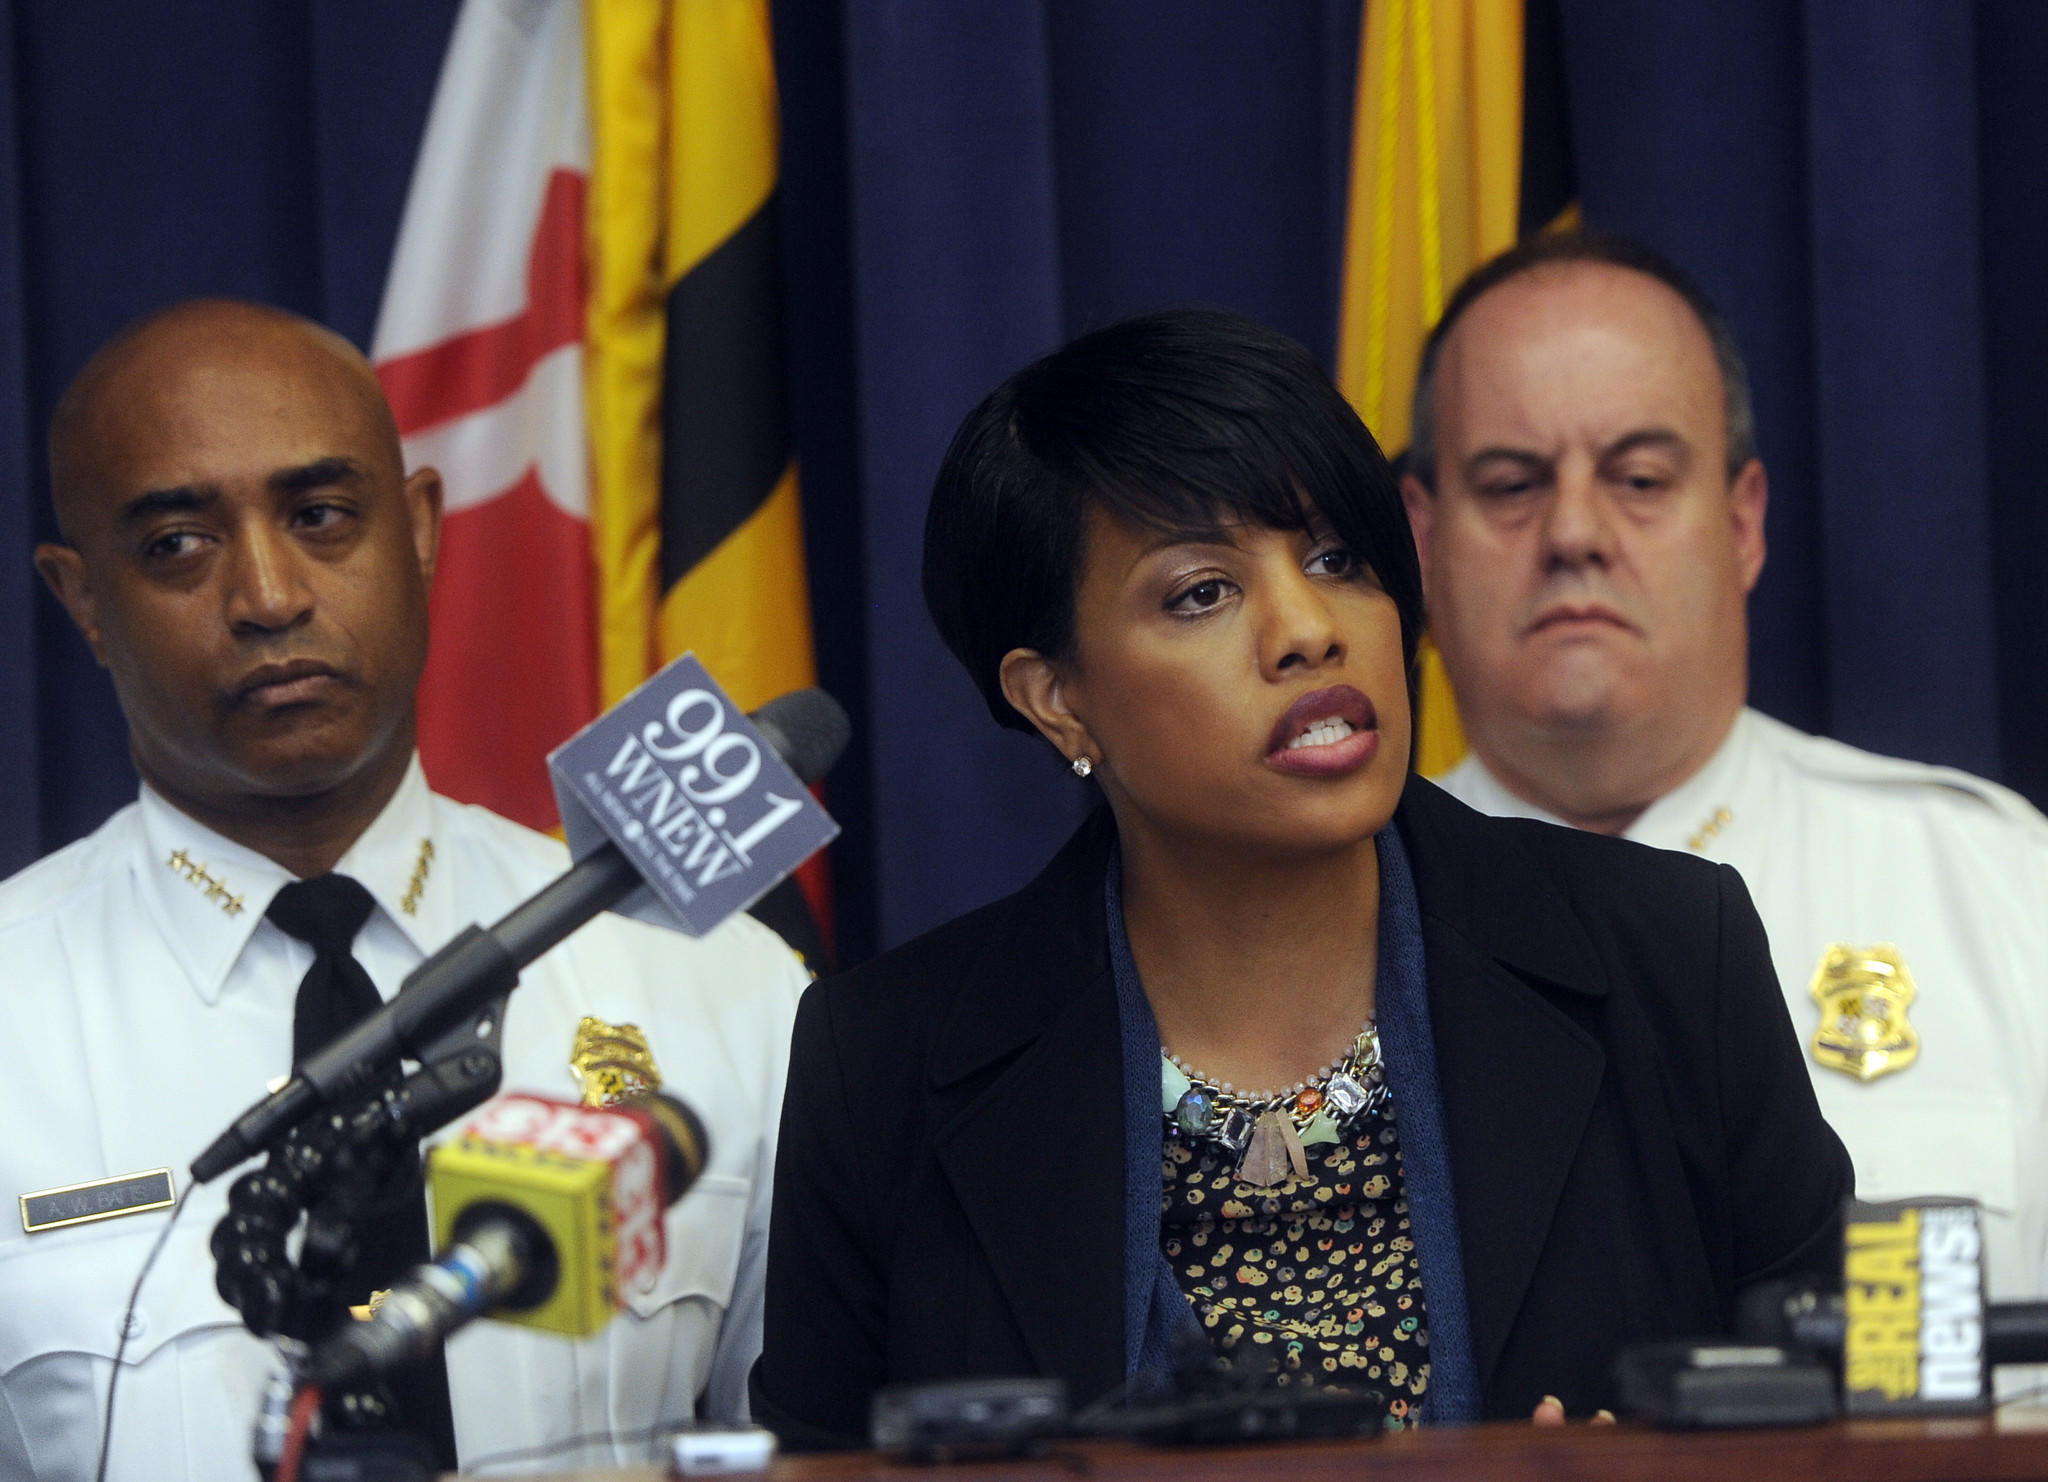 Baltimore Mayor Stephanie Rawlings-Blake, joined by Baltimore Police Commissioner Anthony Batts, left, discusses a report which outlines steps the city plans to take to reduce police brutality.